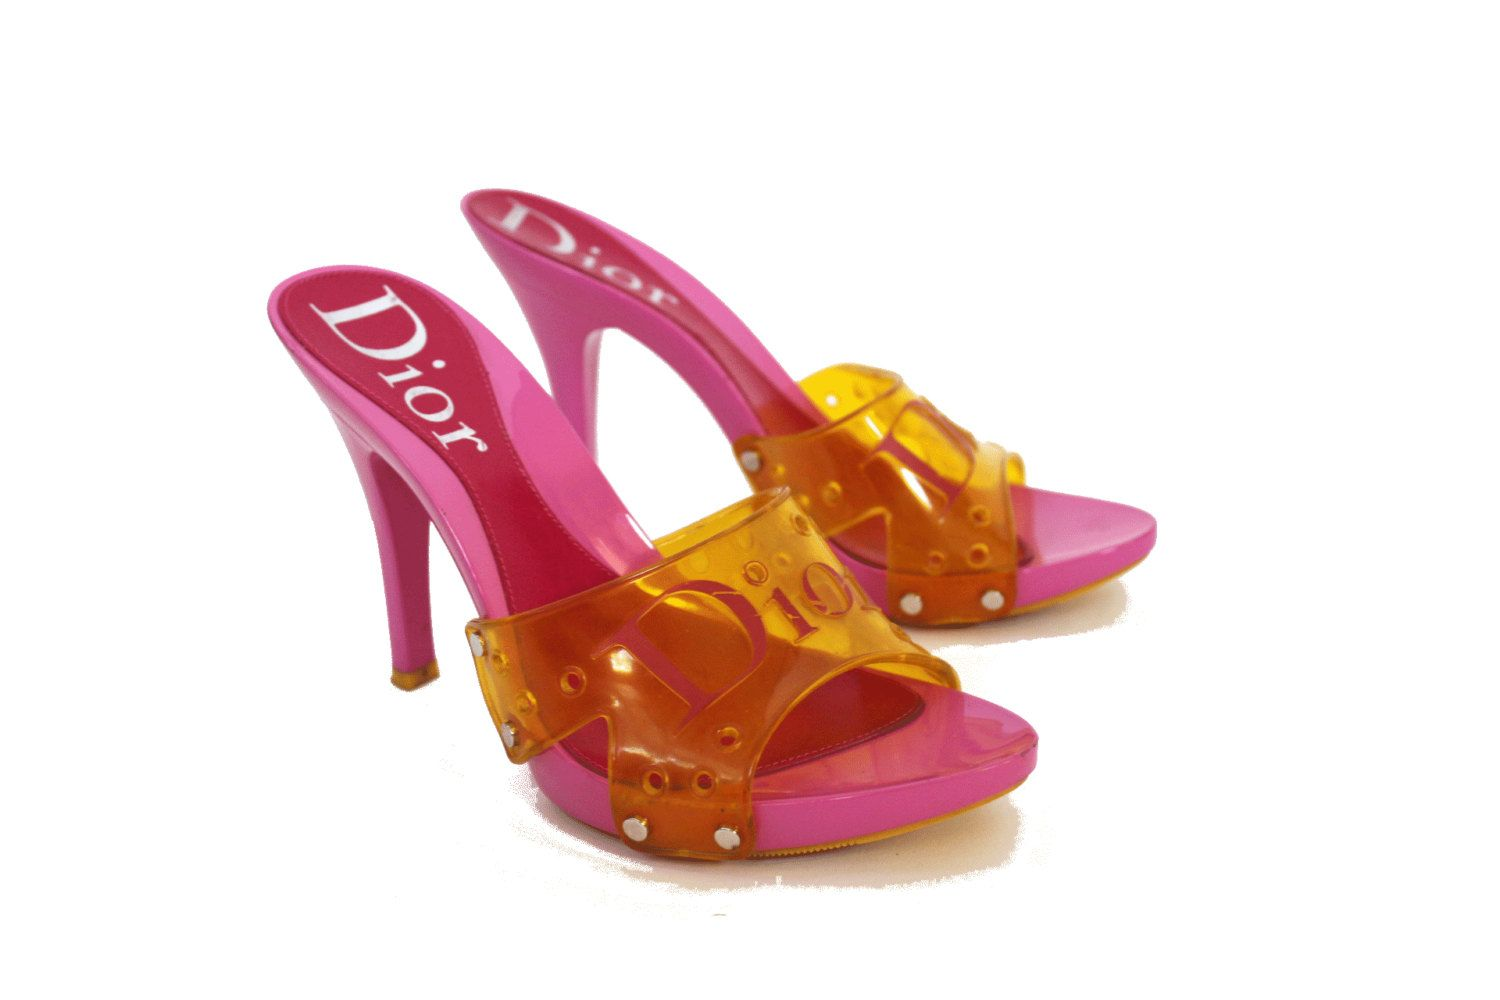 8d1832c7424 Vintage Dior heels 90's pink and yellow clear plastic mules CD ...